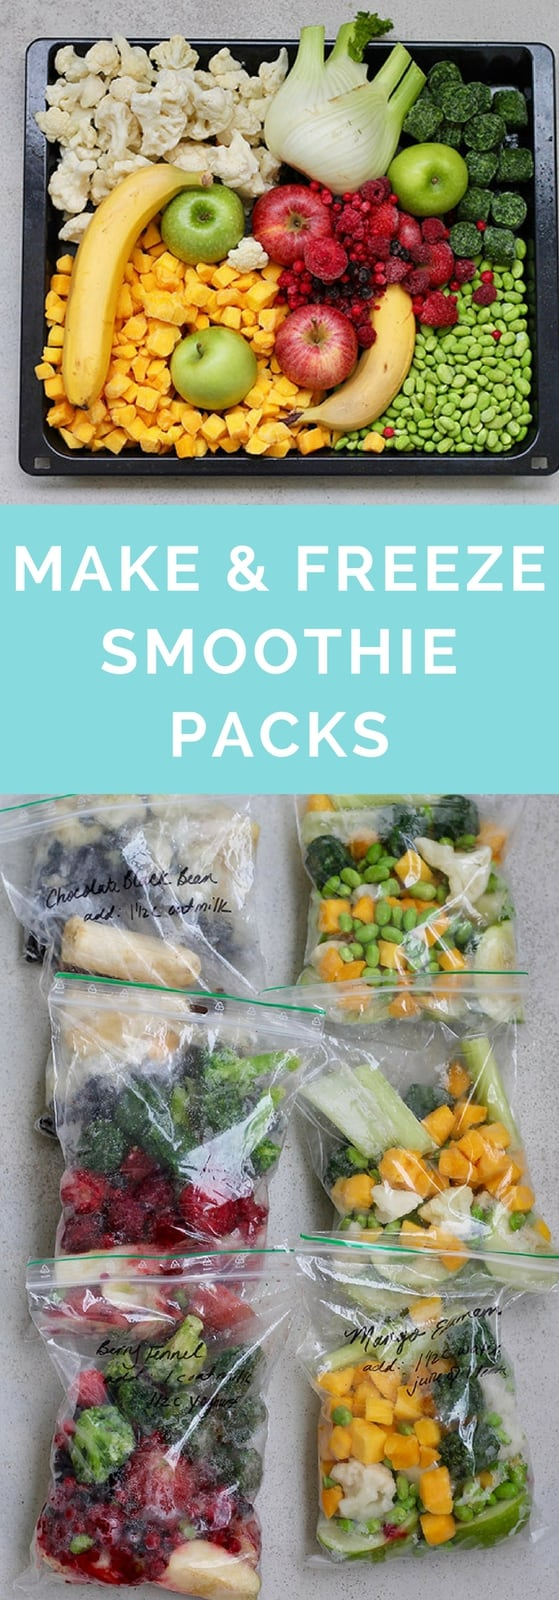 Simplify your morning routine with make-and-freeze smoothie packs! Bulk prep your favourite smoothie recipes so all you need to do is dump and blend on a busy morning. #smoothie #smoothiepacks #makeandfreeze #healthy #recipe #mealprep